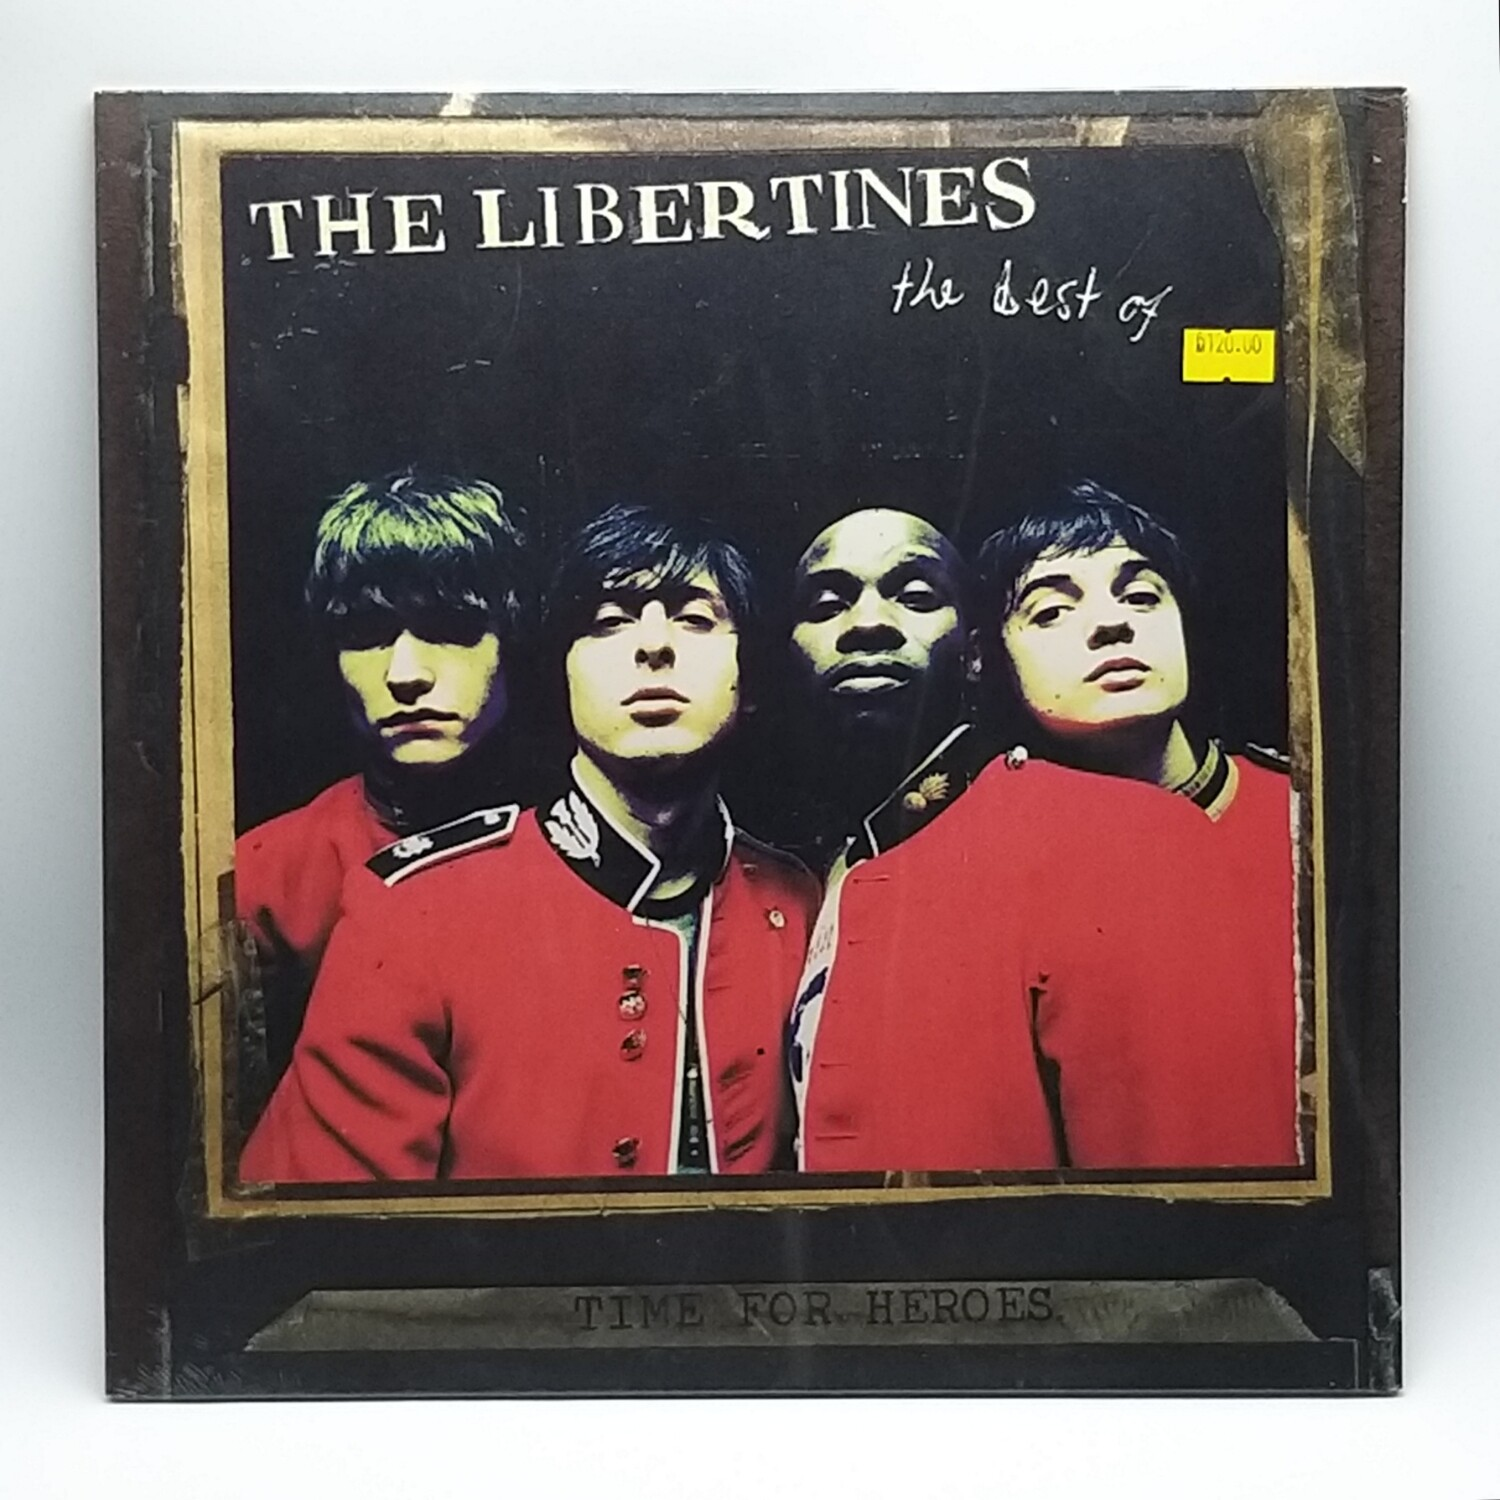 THE LIBERTINES -TIME FOR HEROES: THE BEST OF...- LP